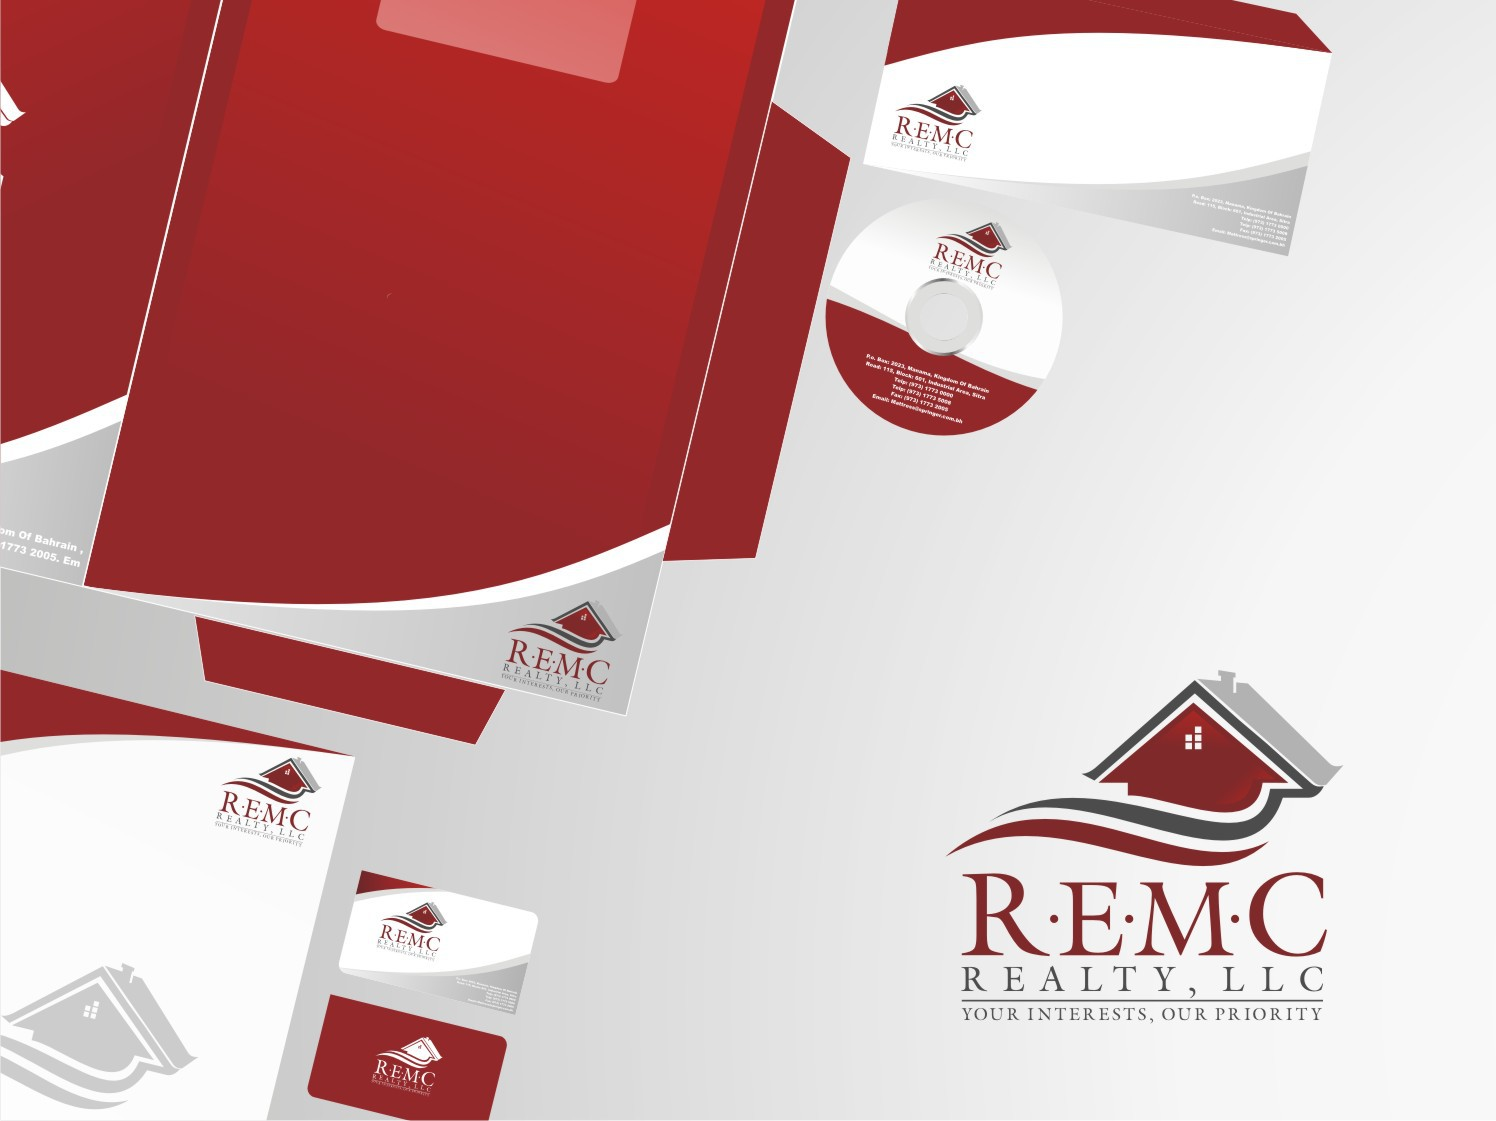 New logo wanted for REMC Realty, LLC